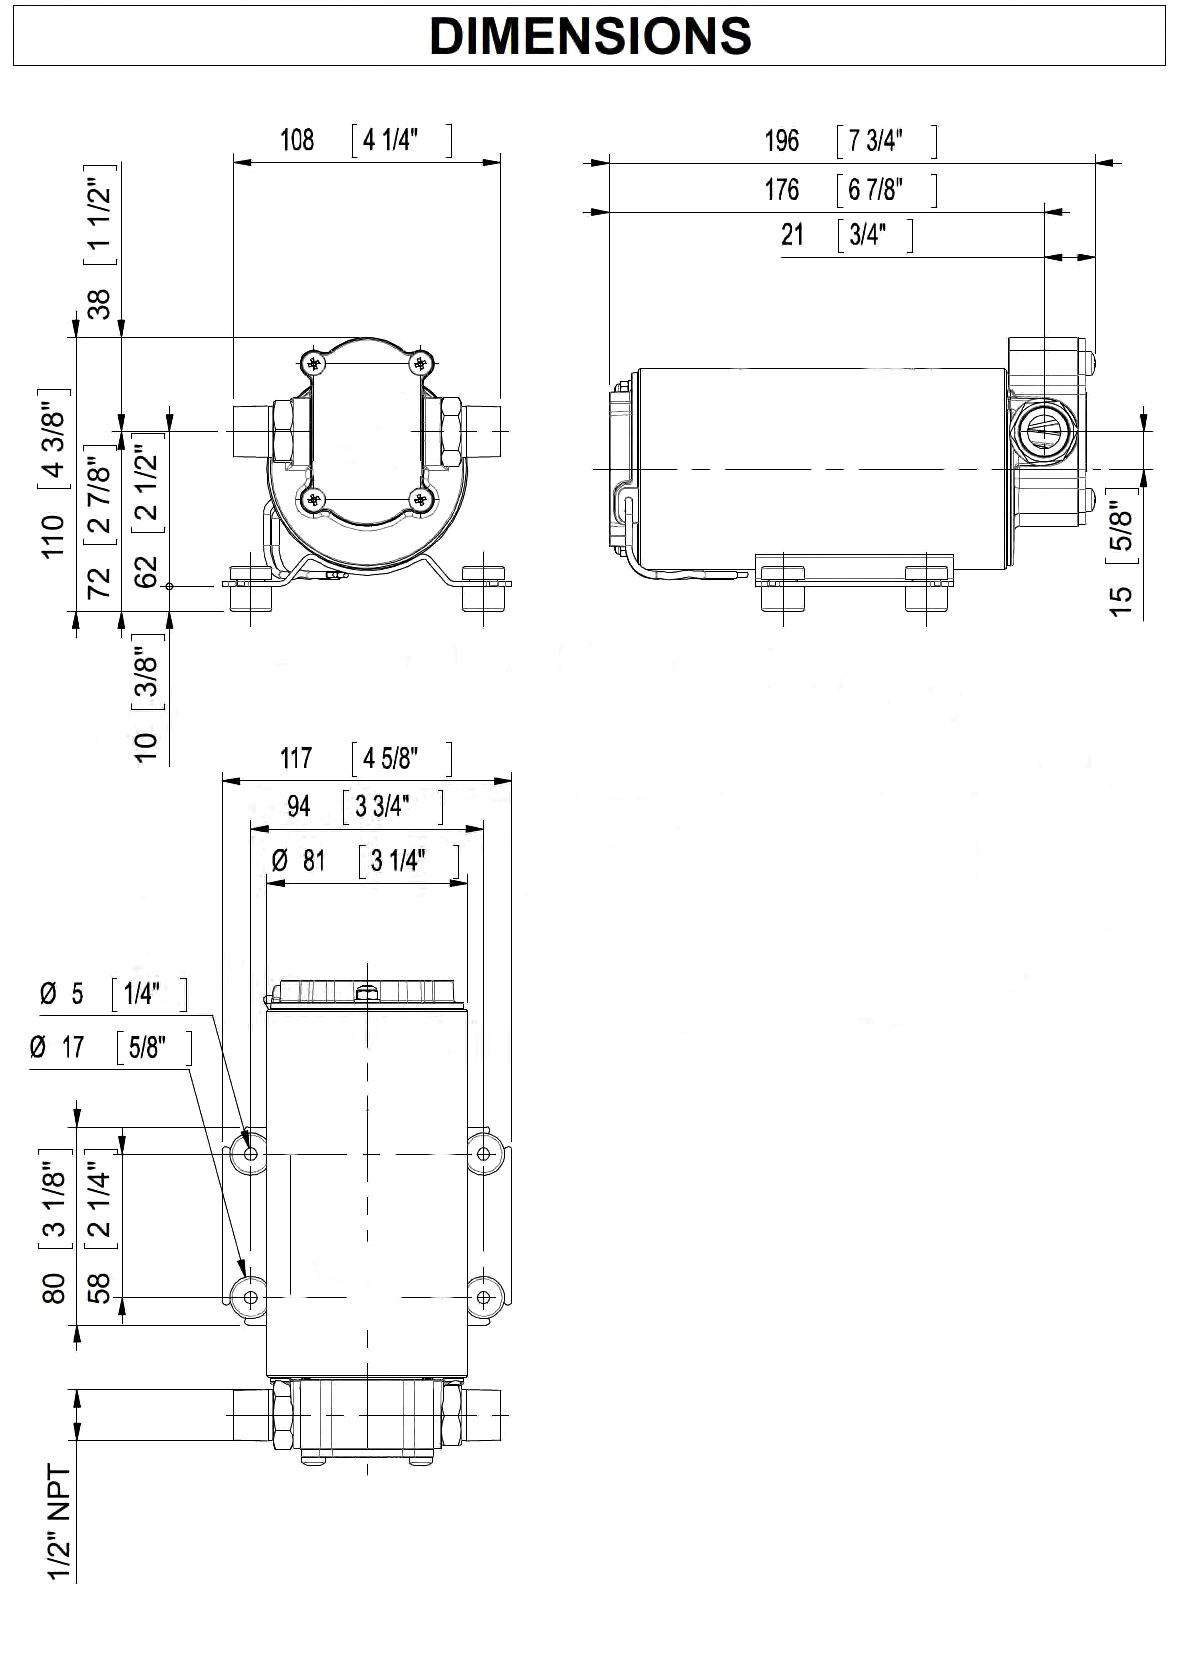 hight resolution of gp 612 dimensions jpg